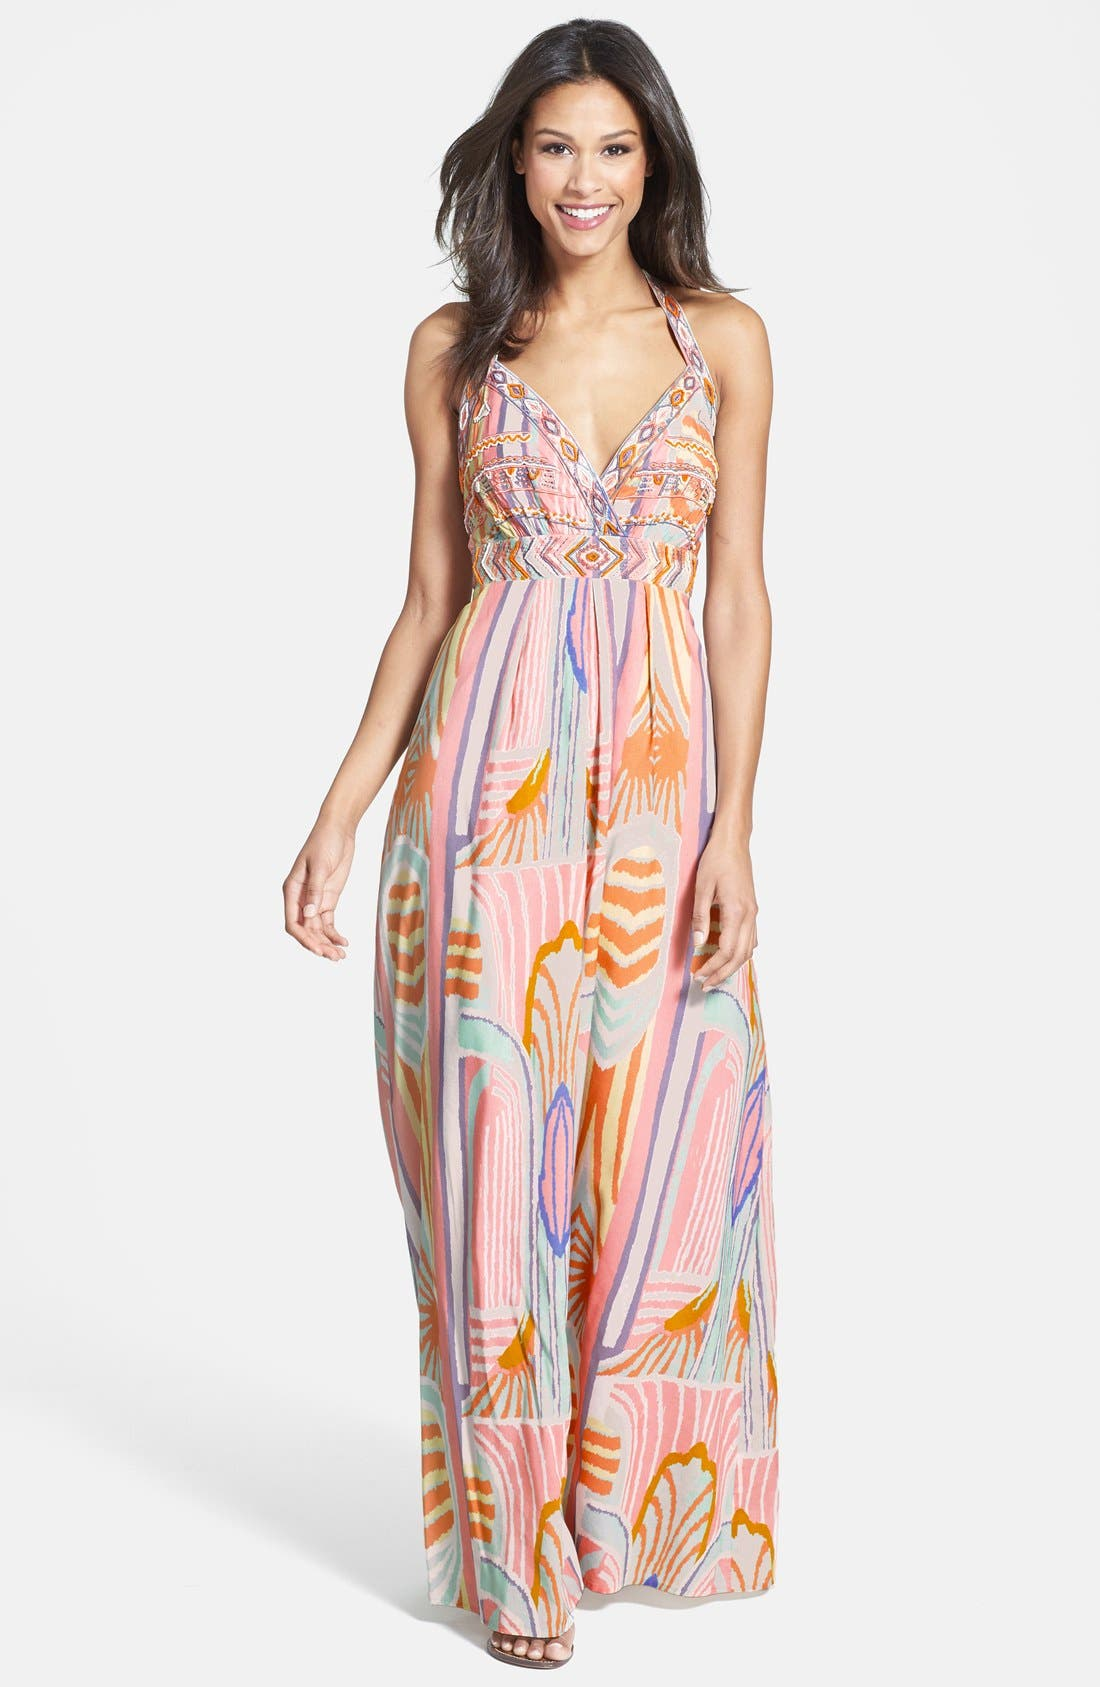 Alternate Image 1 Selected - Jessica Simpson Beaded Print Maxi Dress (Nordstrom Exclusive)